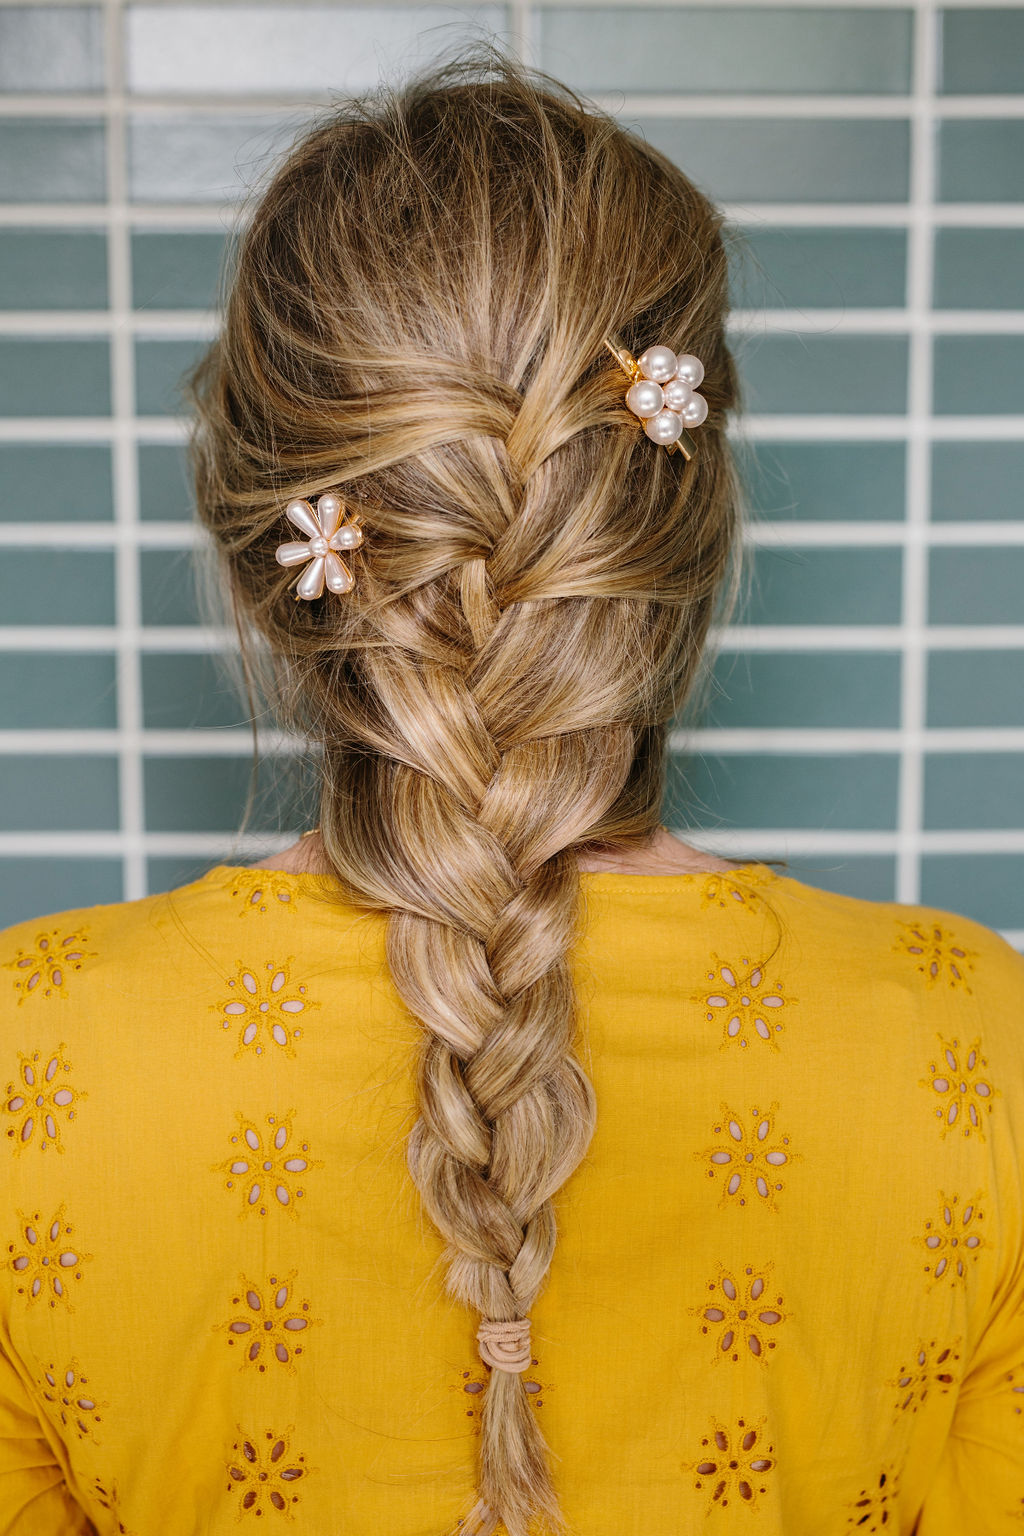 Pleasing How To French Braid An Easy Step By Step Tutorial For A Relaxed Schematic Wiring Diagrams Phreekkolirunnerswayorg